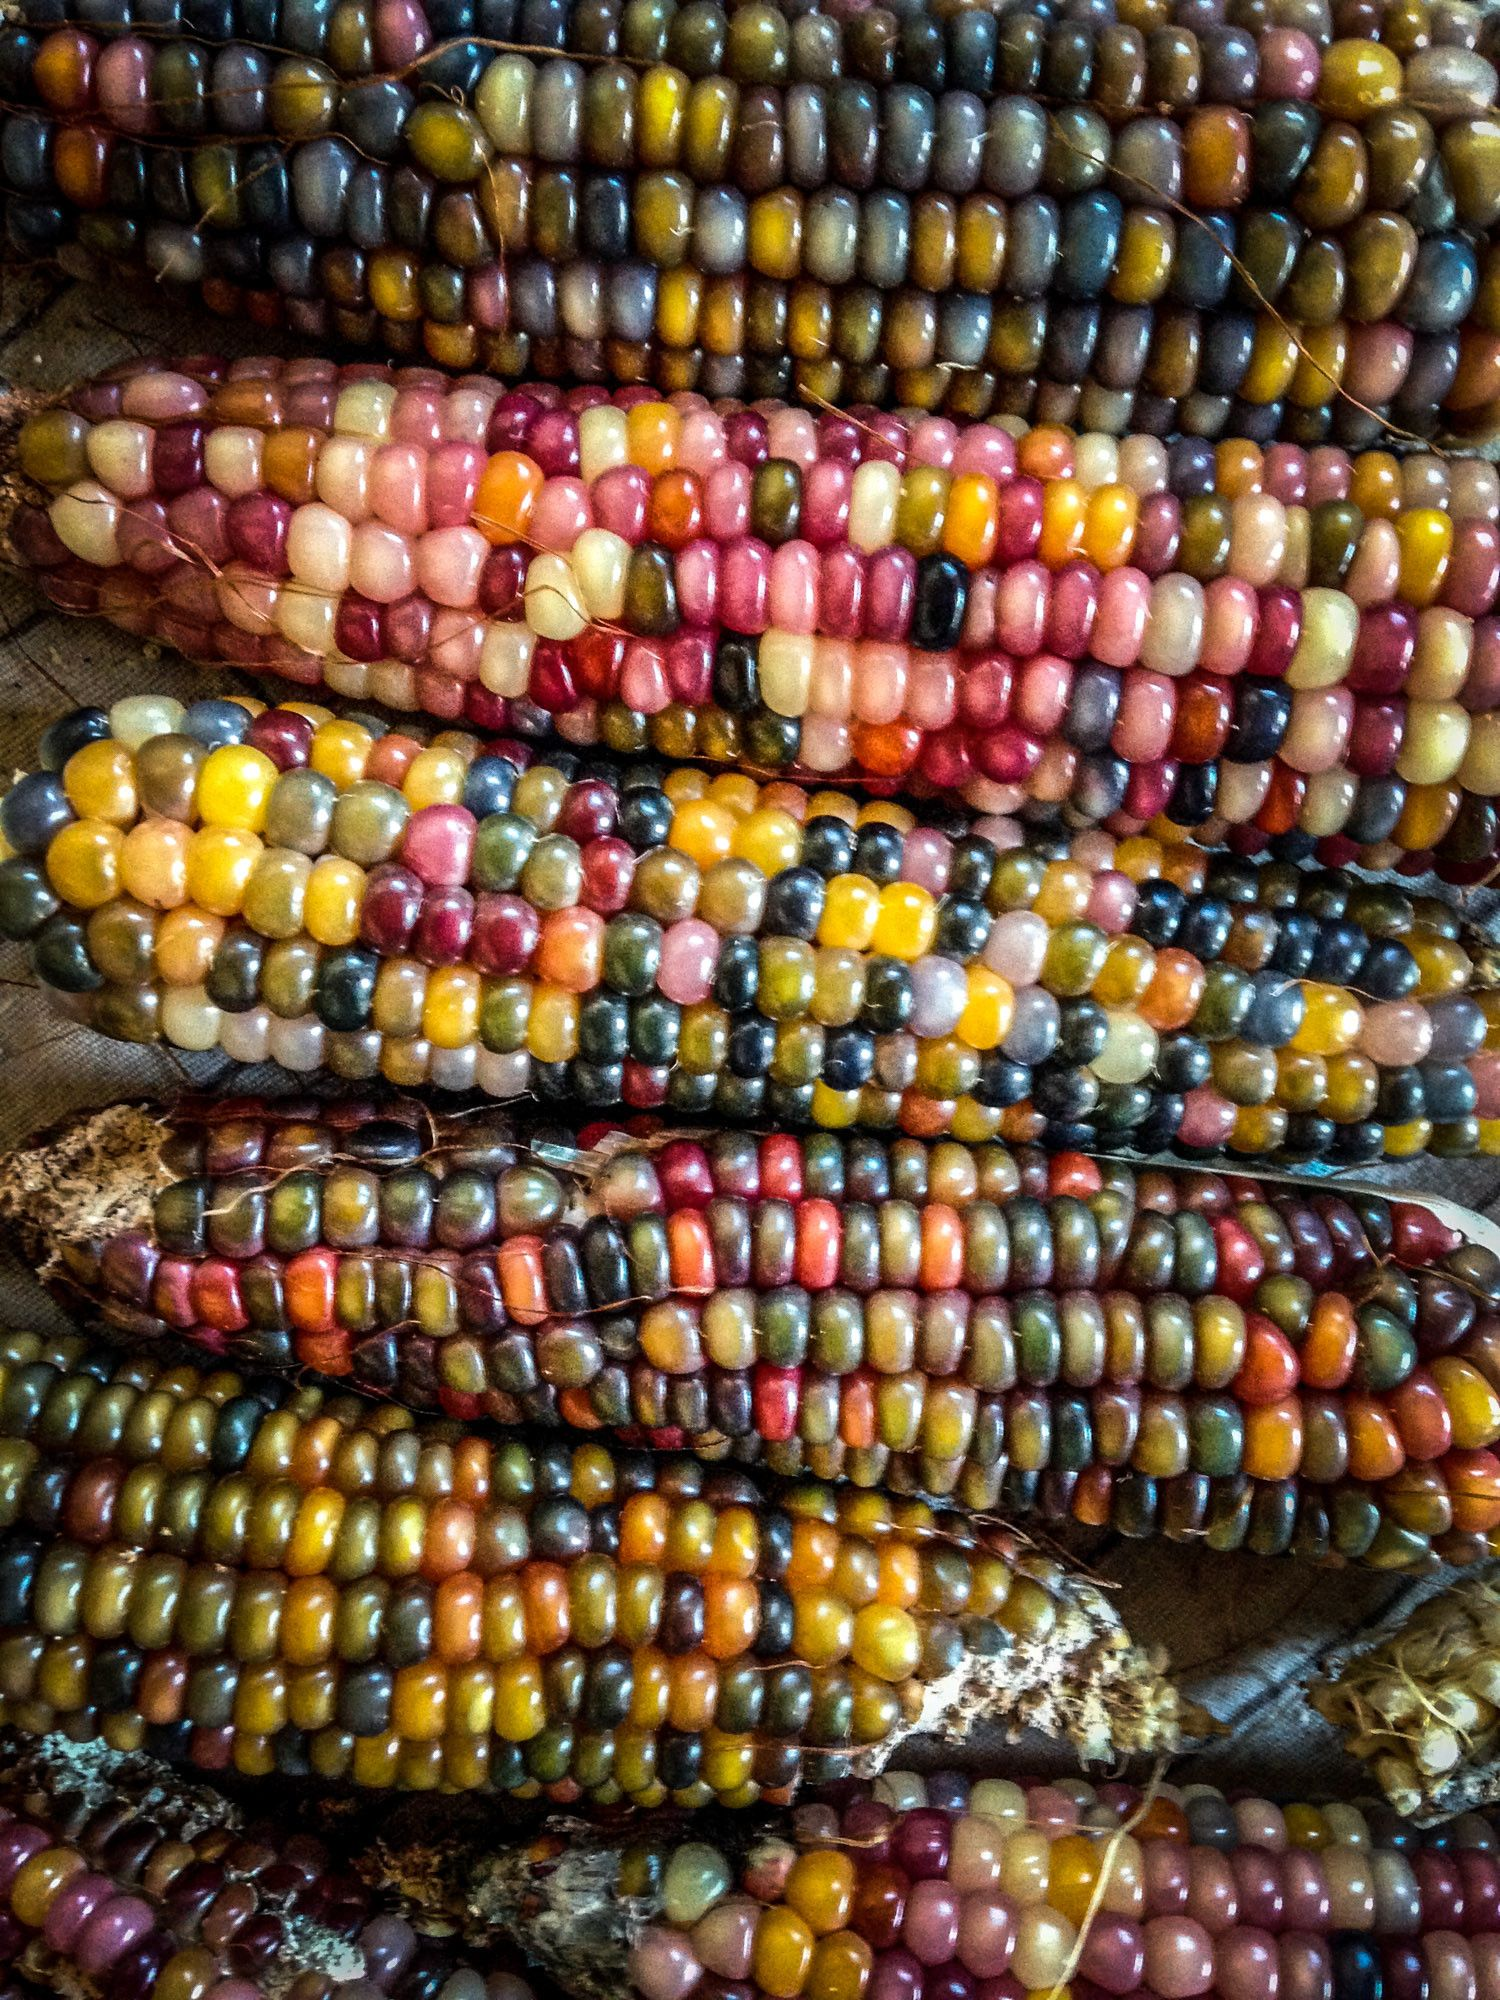 Glass Gem Corn (Zea mays) produces highly variegated, three to eight inch cobs with translucent kernels that can be used for grinding or merely staring at and marveling at the immense diversity of the